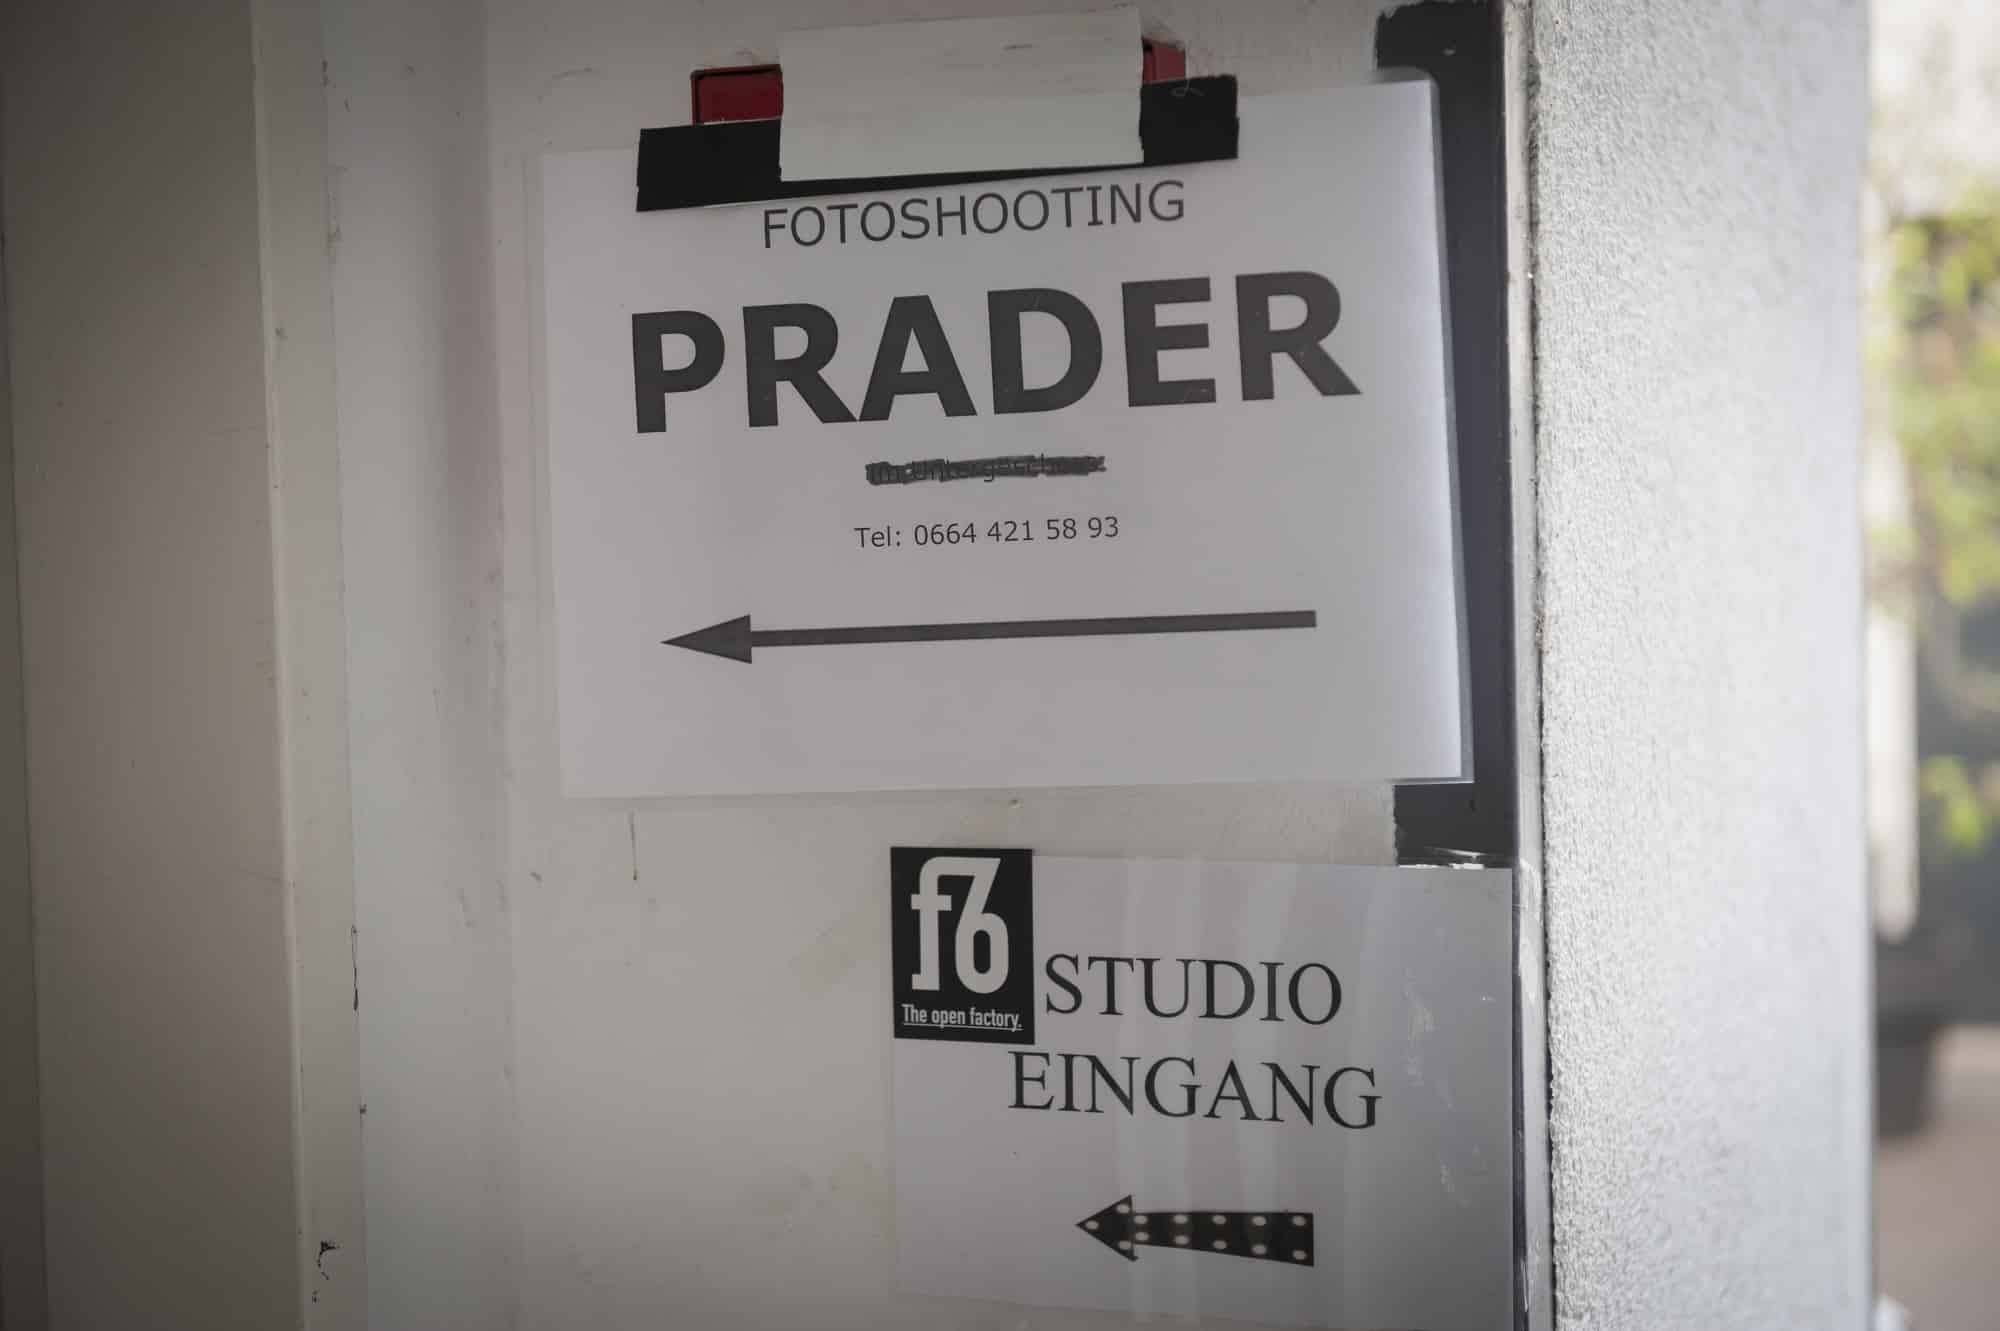 Shooting Prader 239